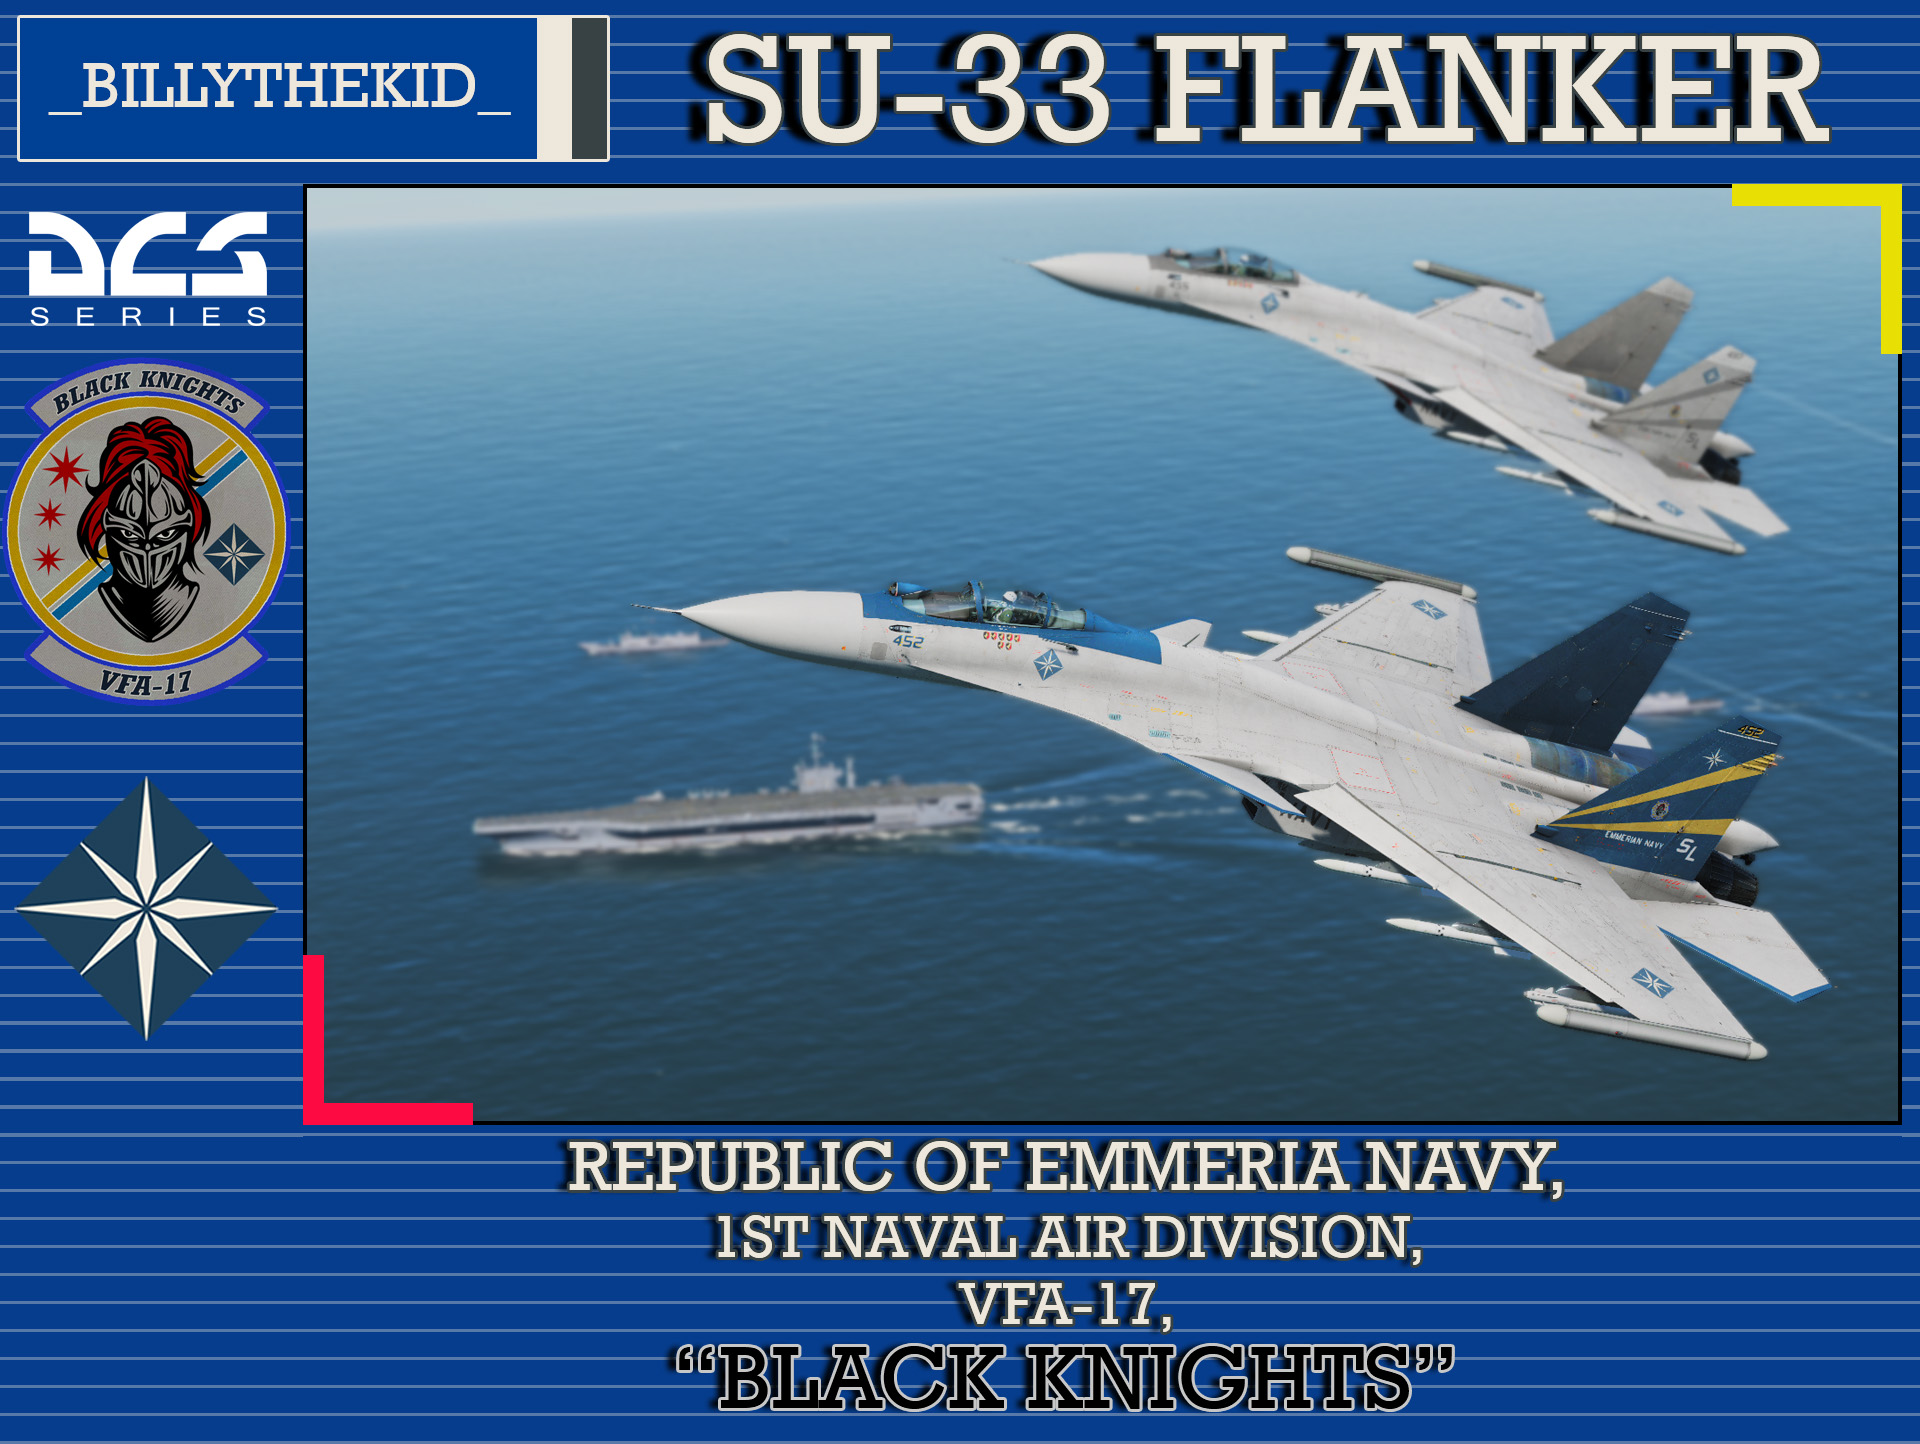 "Ace Combat - Republic of Emmeria Navy - 1st Naval Air Division - VFA-17 ""Black Knights"" SU-33 Flanker"